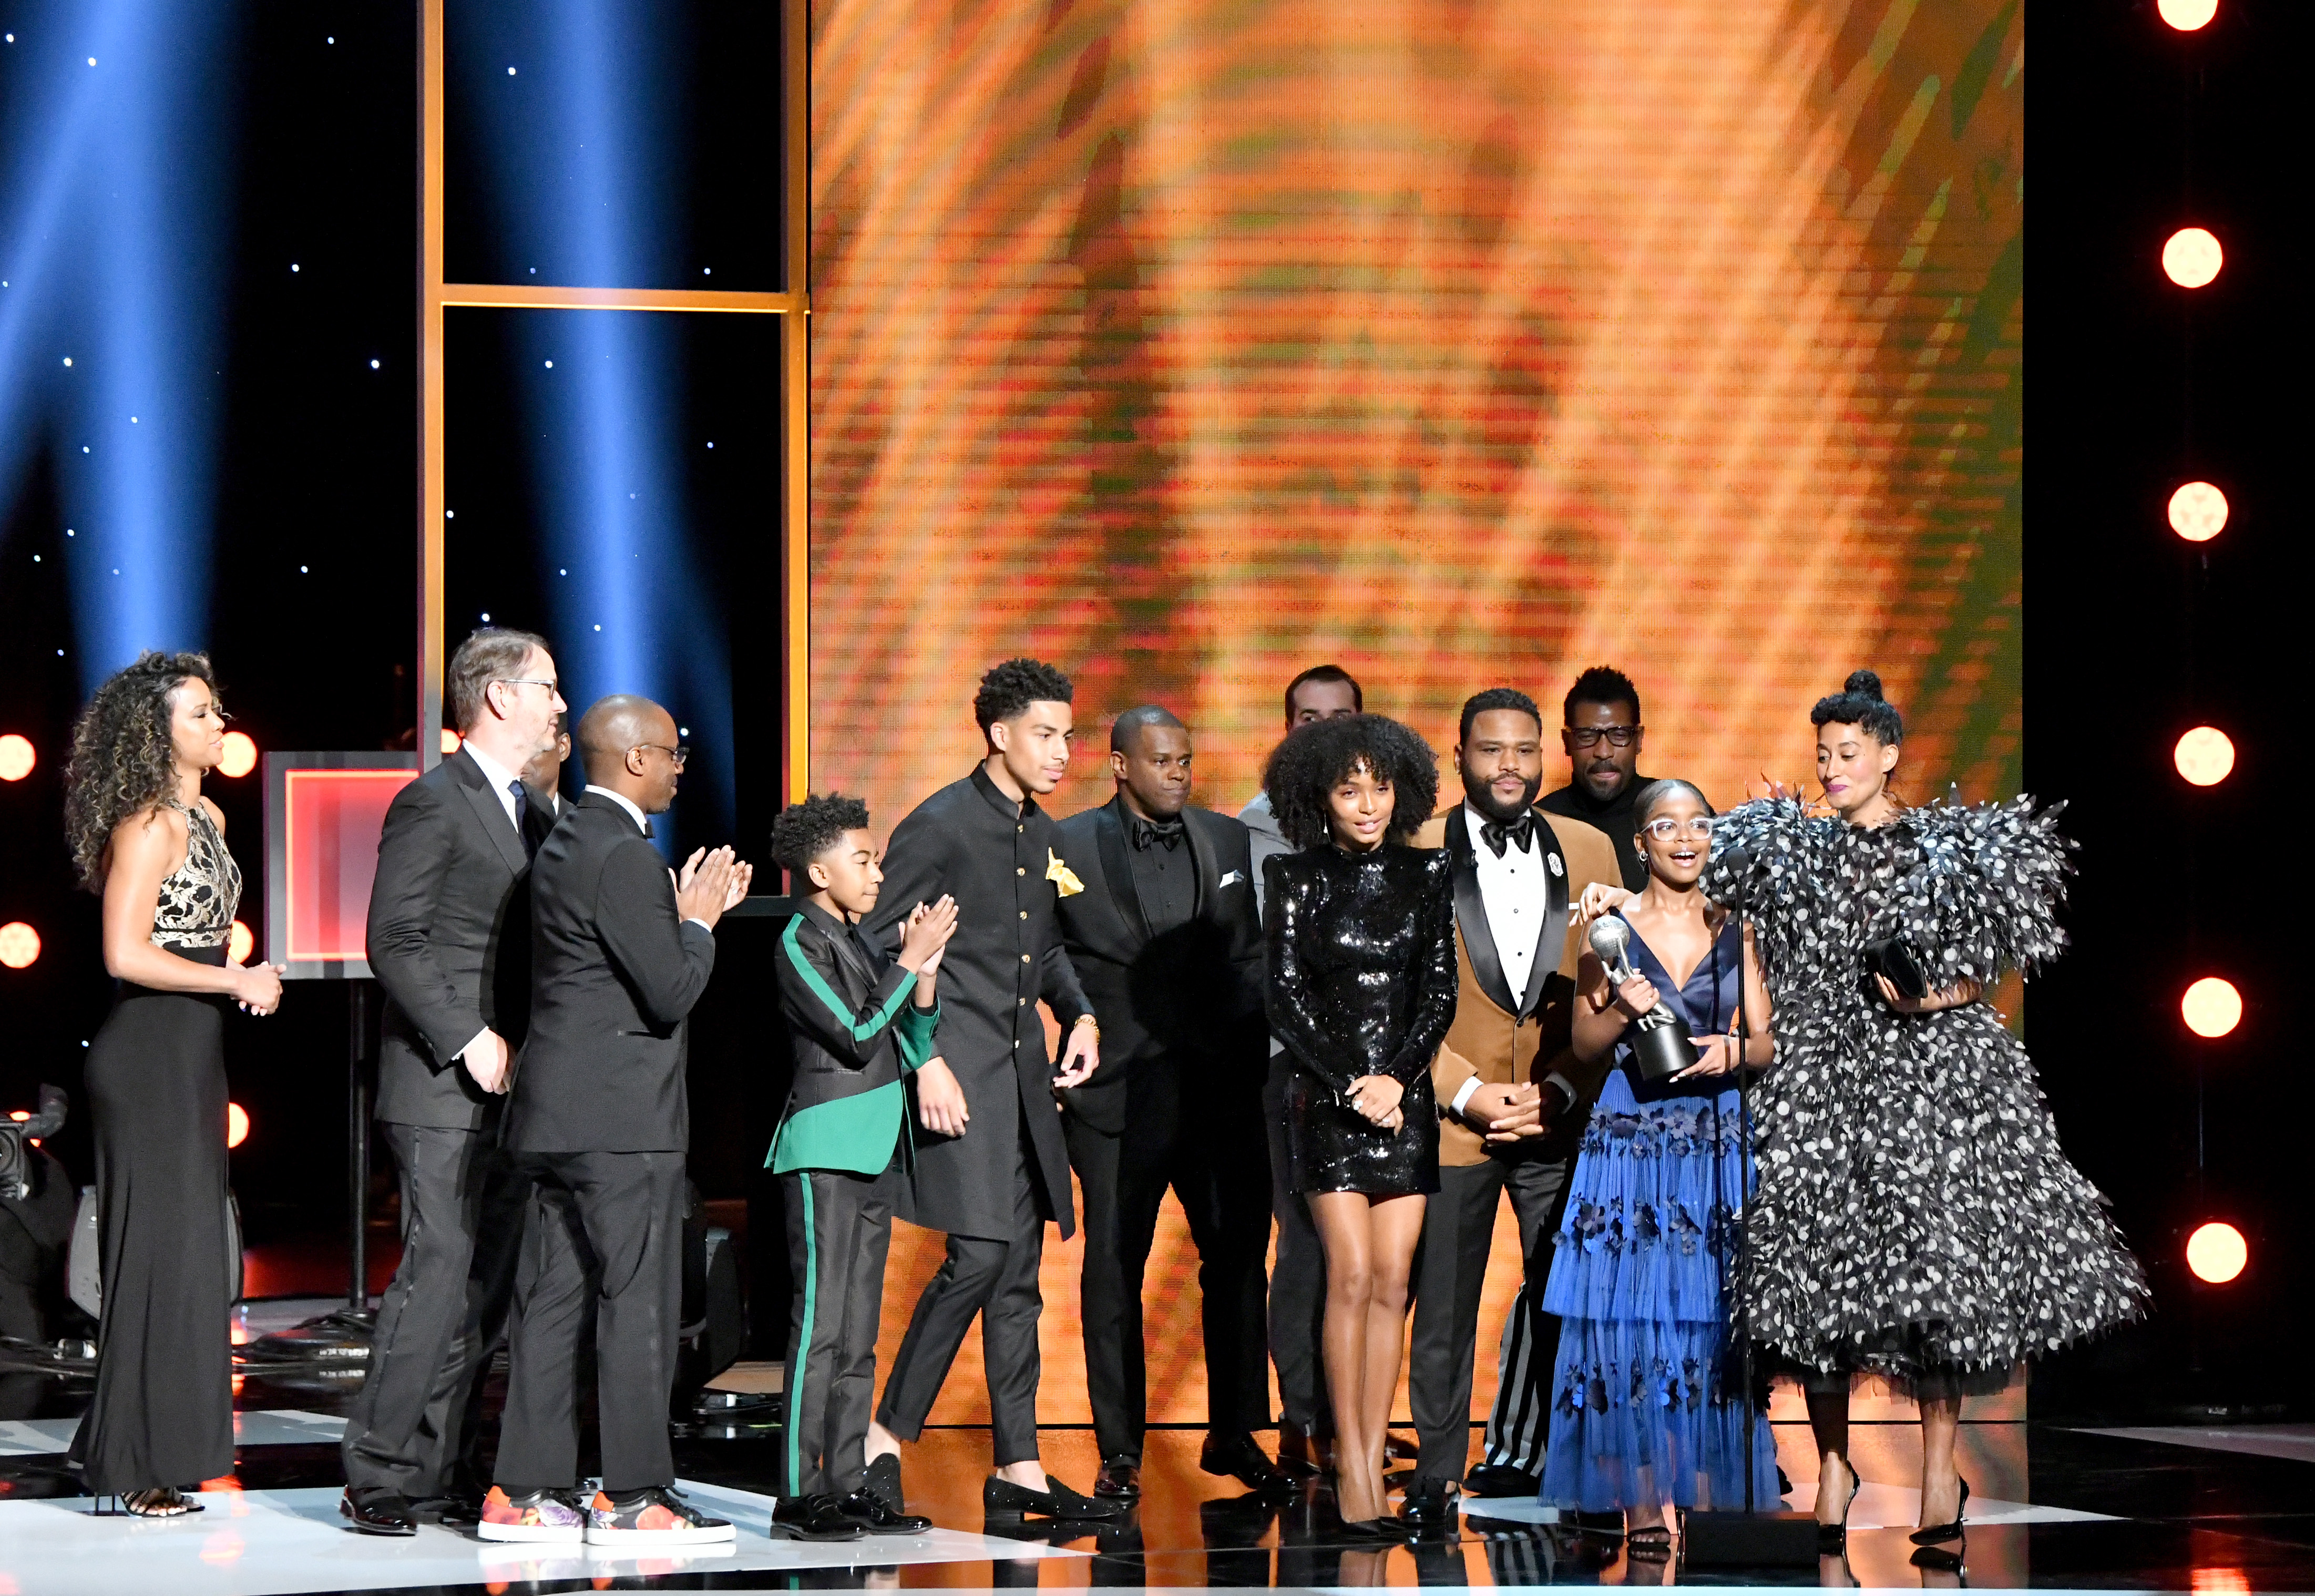 "HOLLYWOOD, CALIFORNIA - MARCH 30: Cast and crew of ""Black-ish"" accept the Outstanding Comedy Series award onstage at the 50th NAACP Image Awards at Dolby Theatre on March 30, 2019 in Hollywood, California. (Photo by Earl Gibson III/Getty Images for NAACP)"